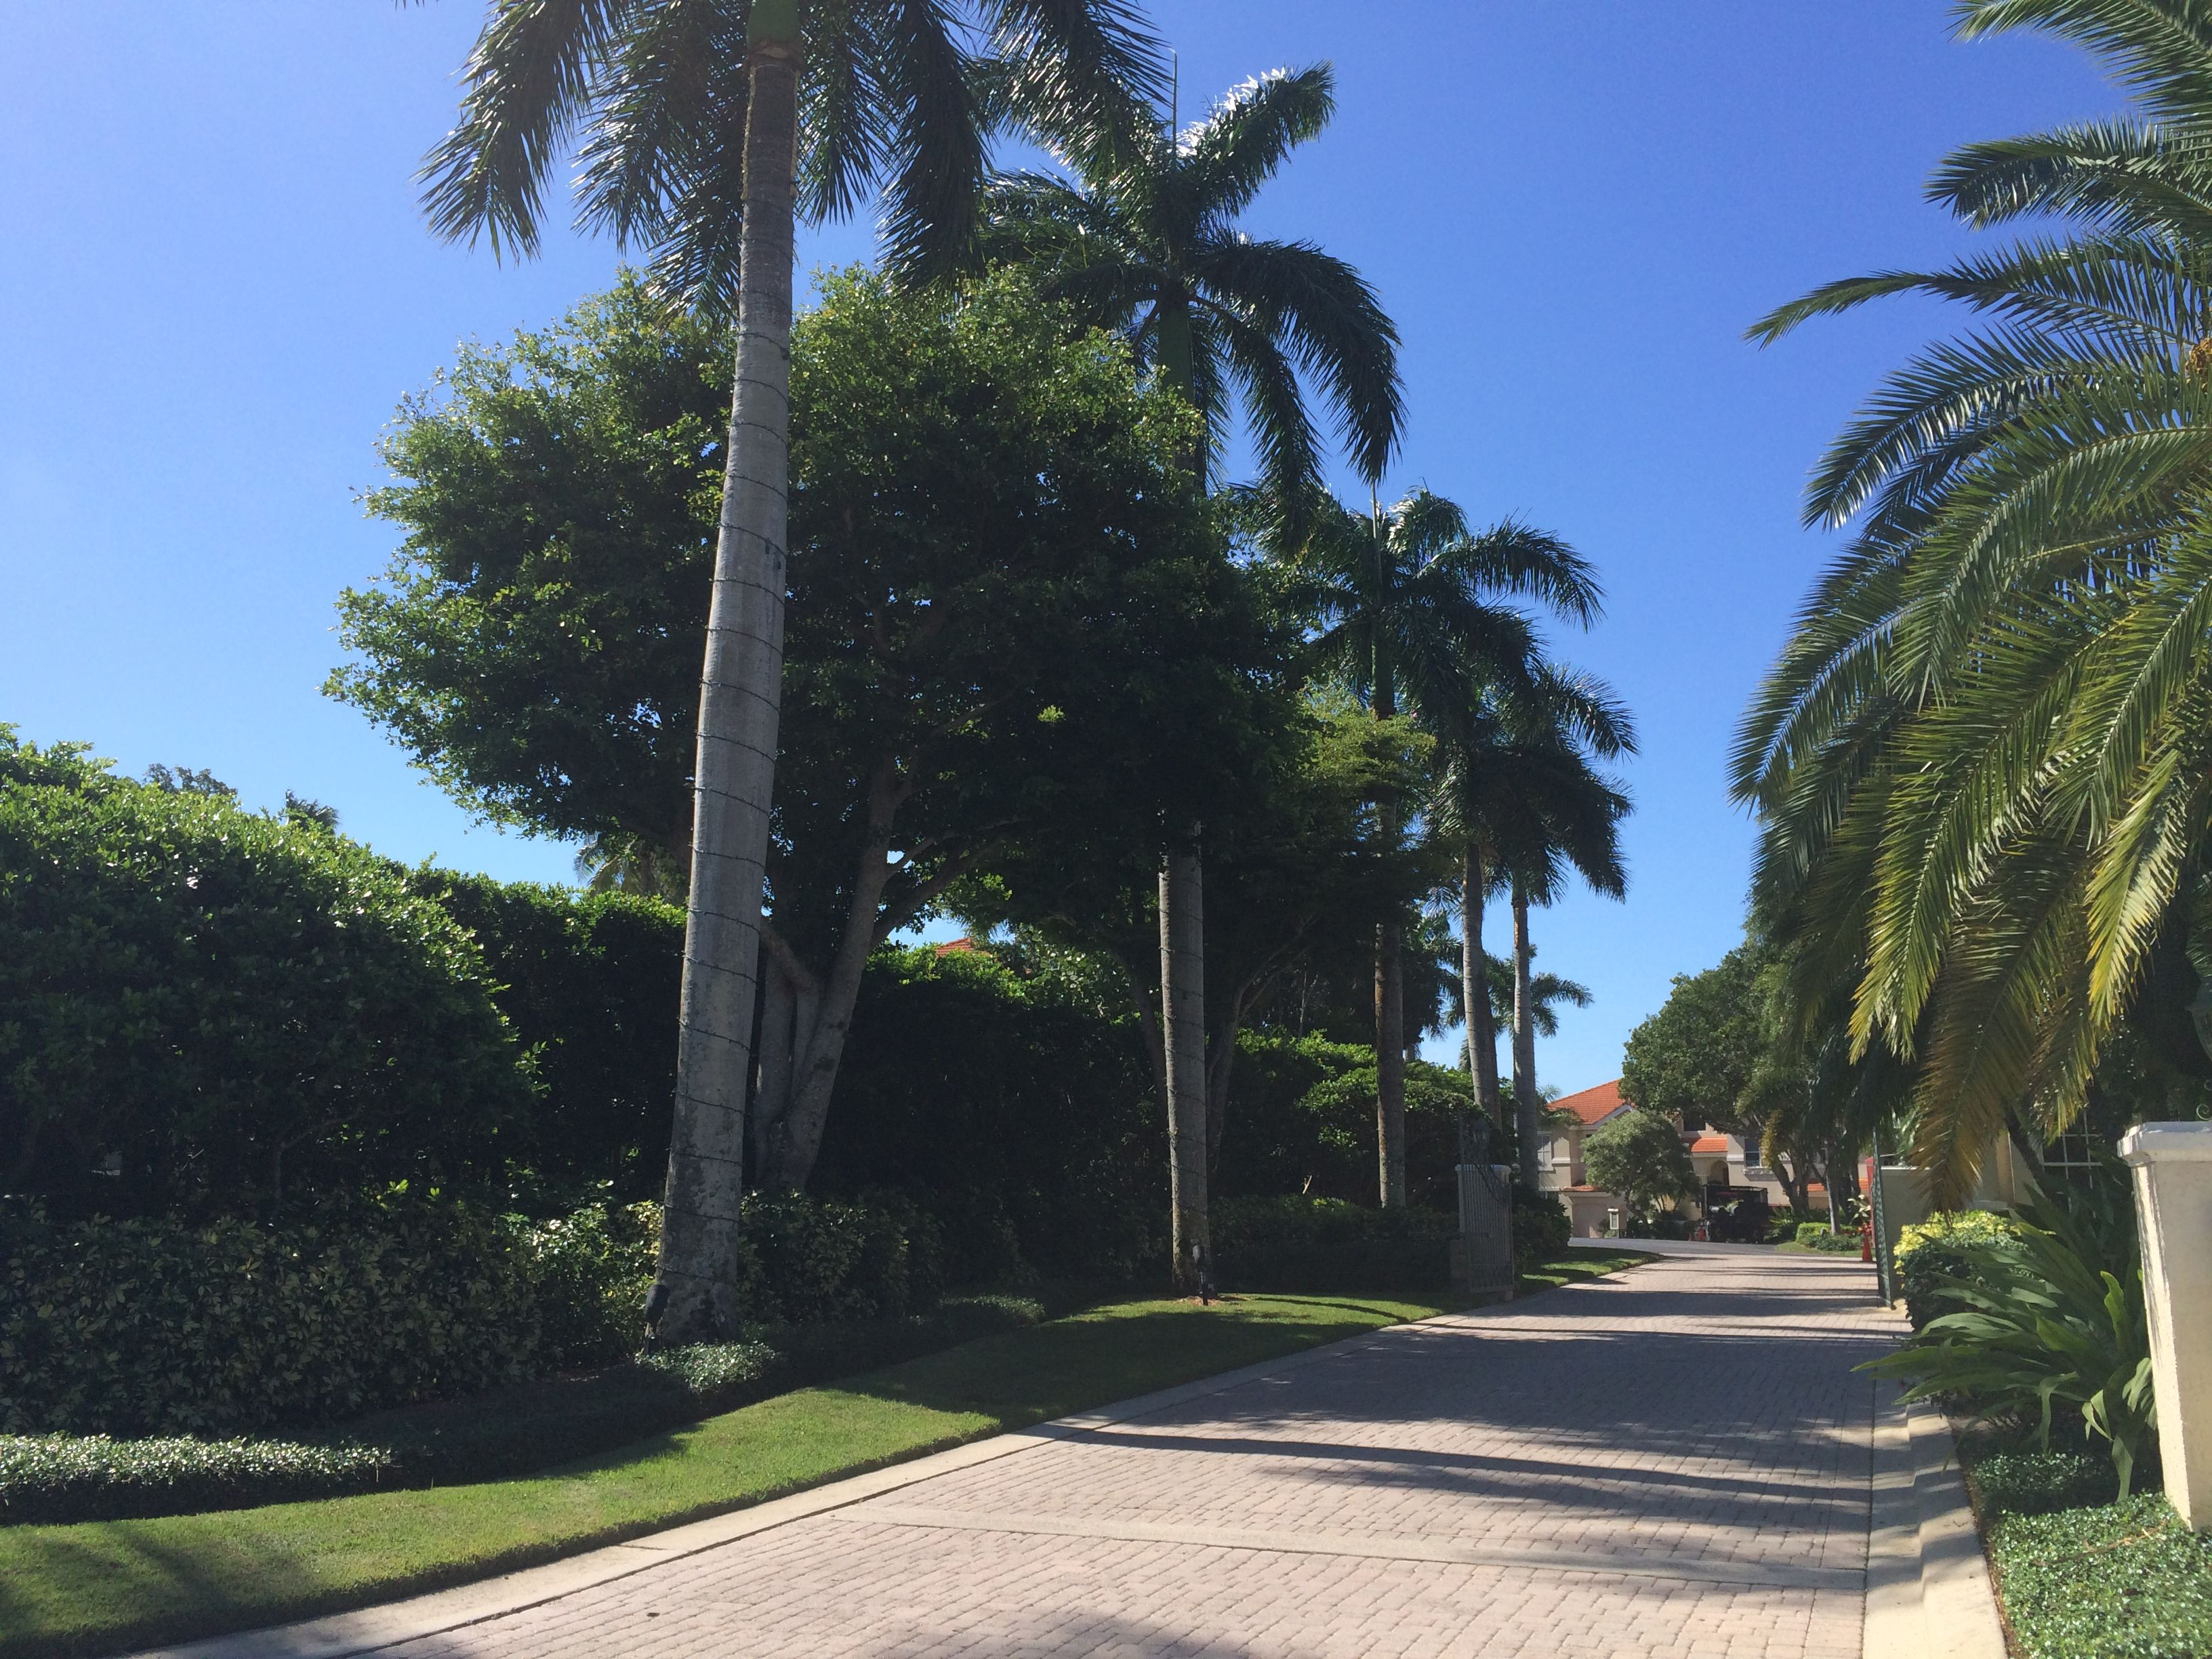 Colonade Naples #Landscaping #Crawfordlandscaping #Naples